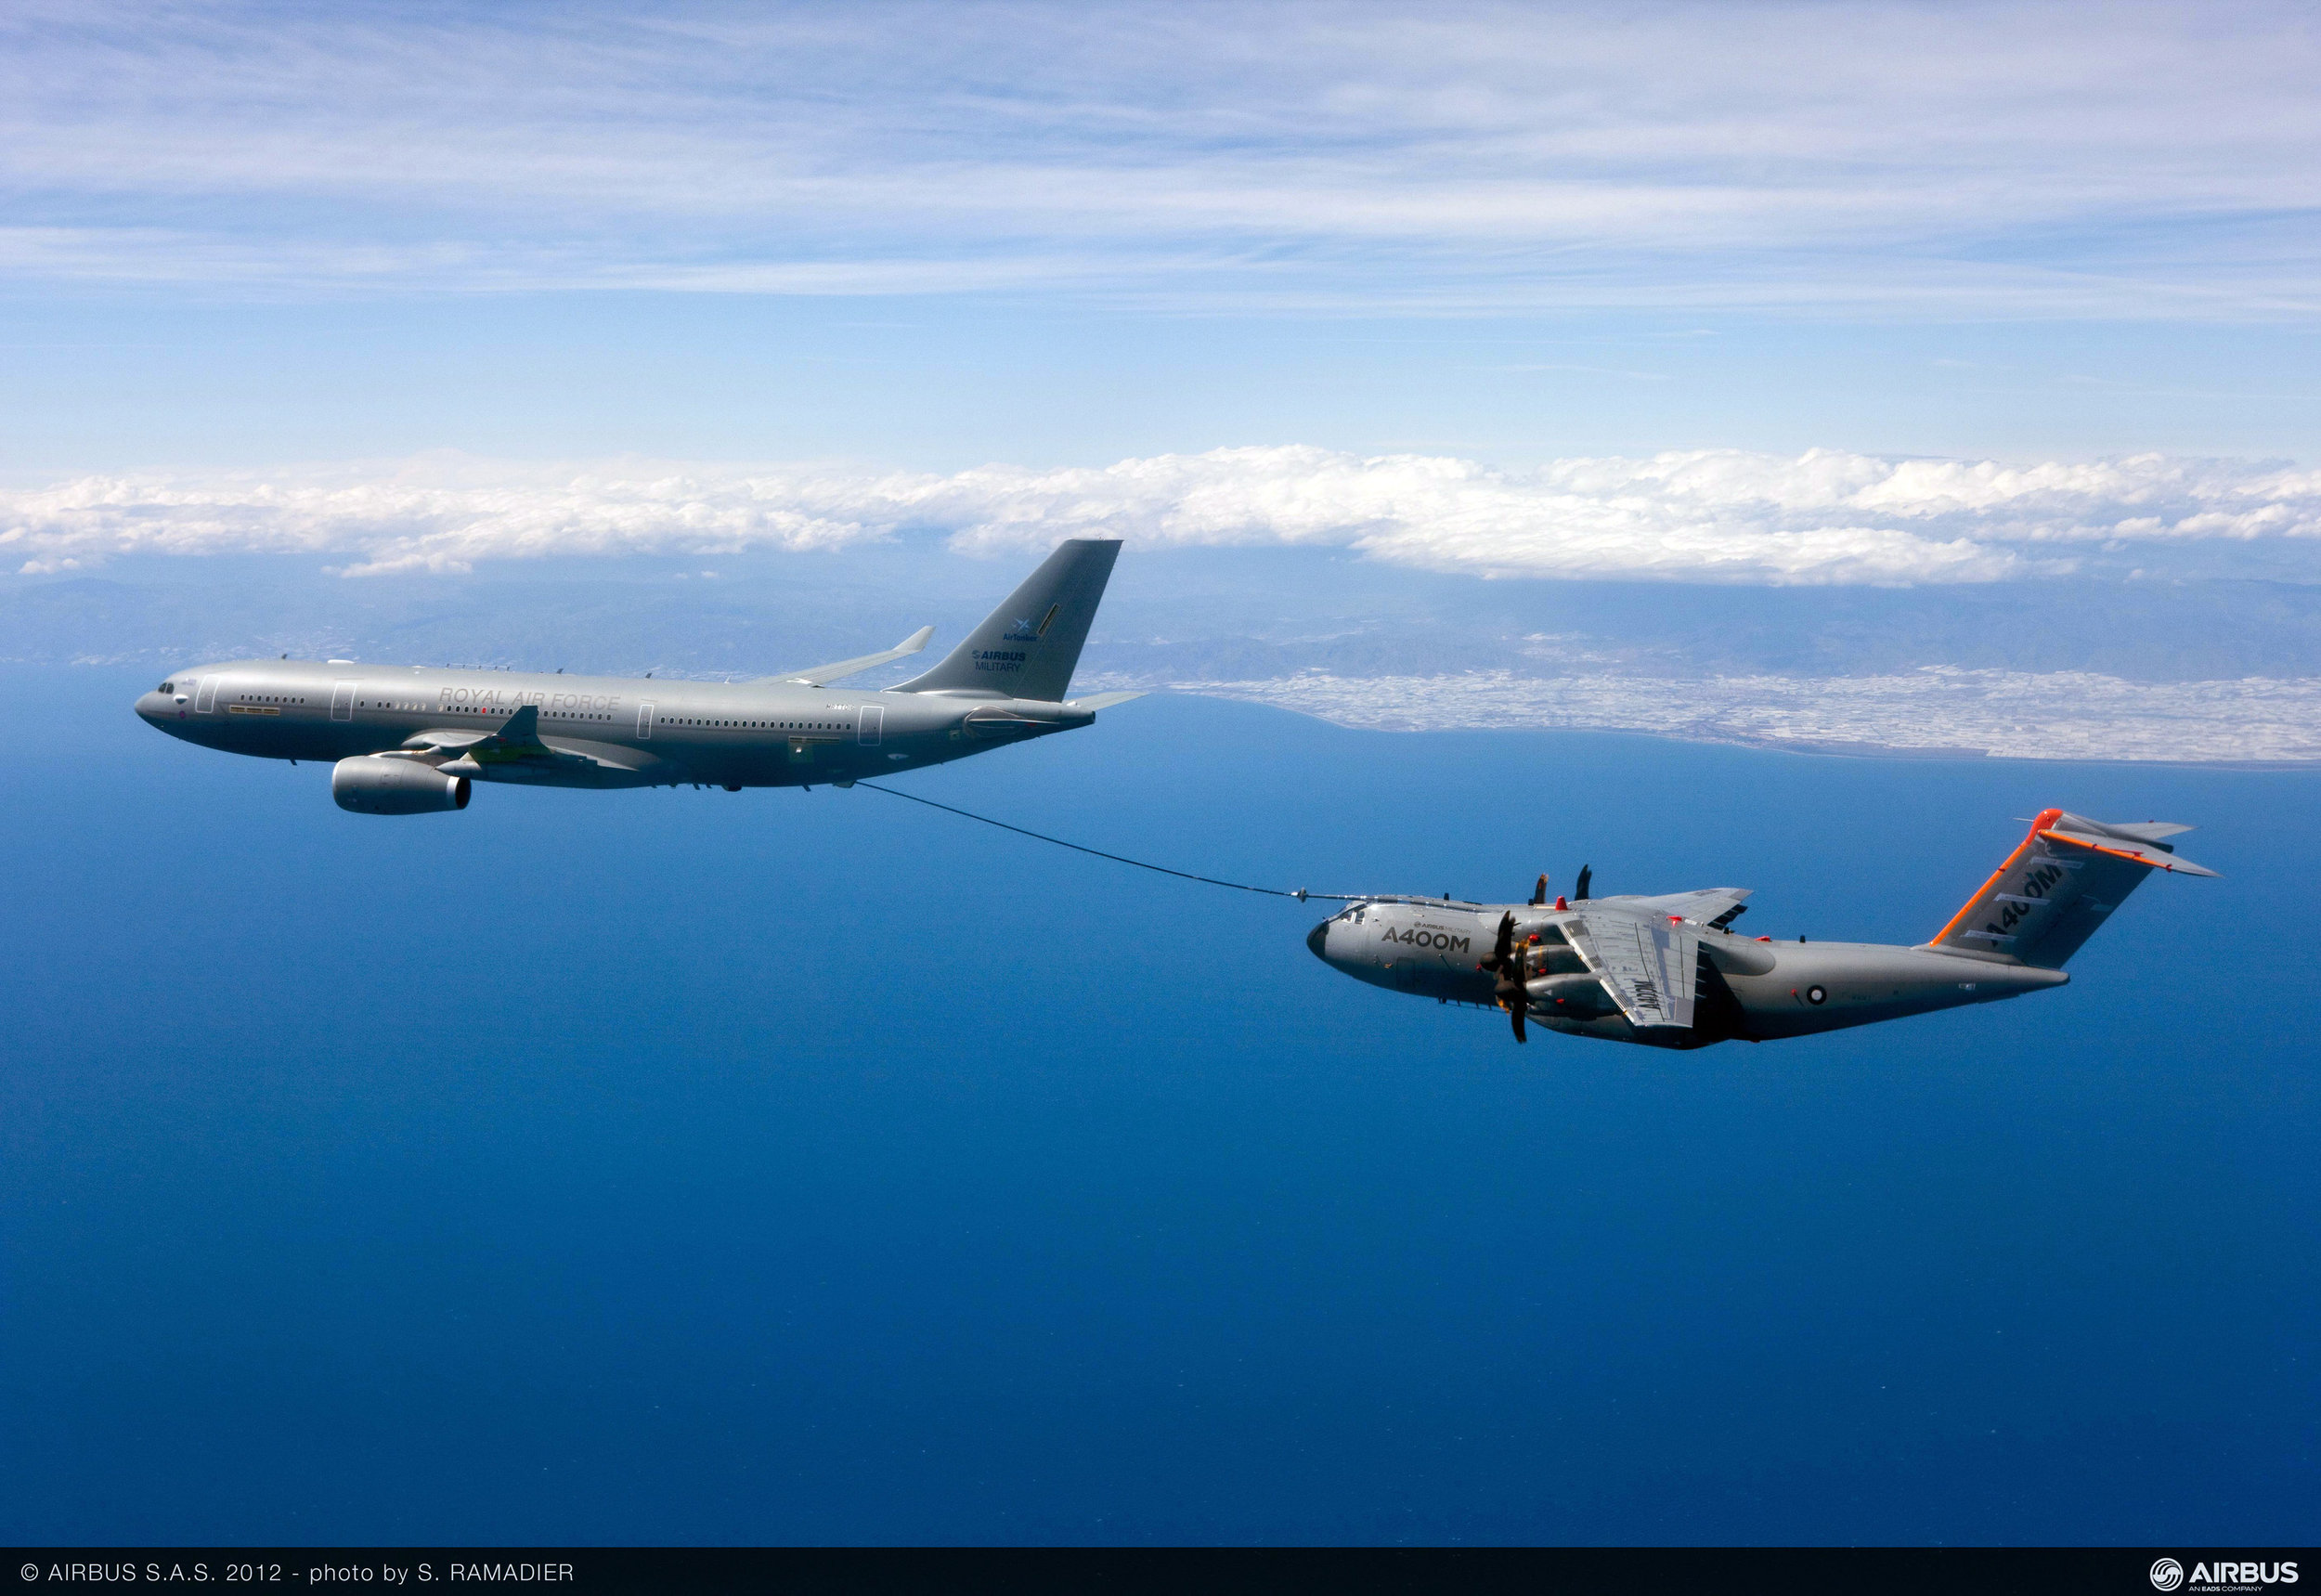 The Airbus A330 Multi-Role Tanker Transport (MRTT) aircraft can be configured for military air transport in addition to providing air-to-air refuelling capabilities. (s. ramadier, airbus)